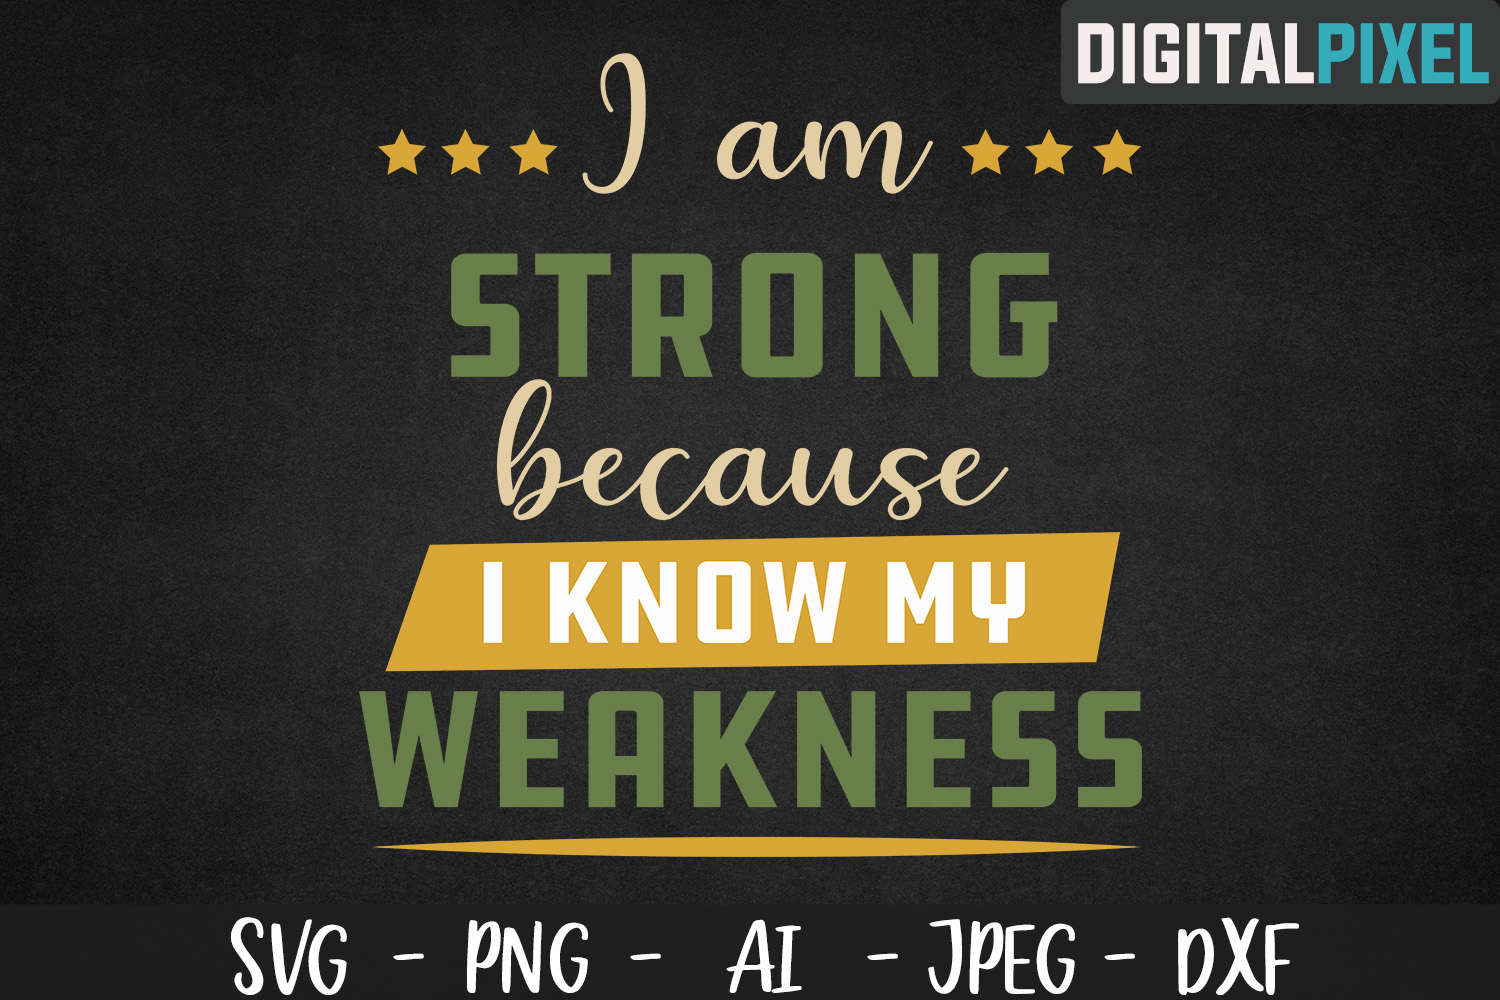 I Am Strong Because I Know My Weakness SVG PNG DXF Circut example image 2